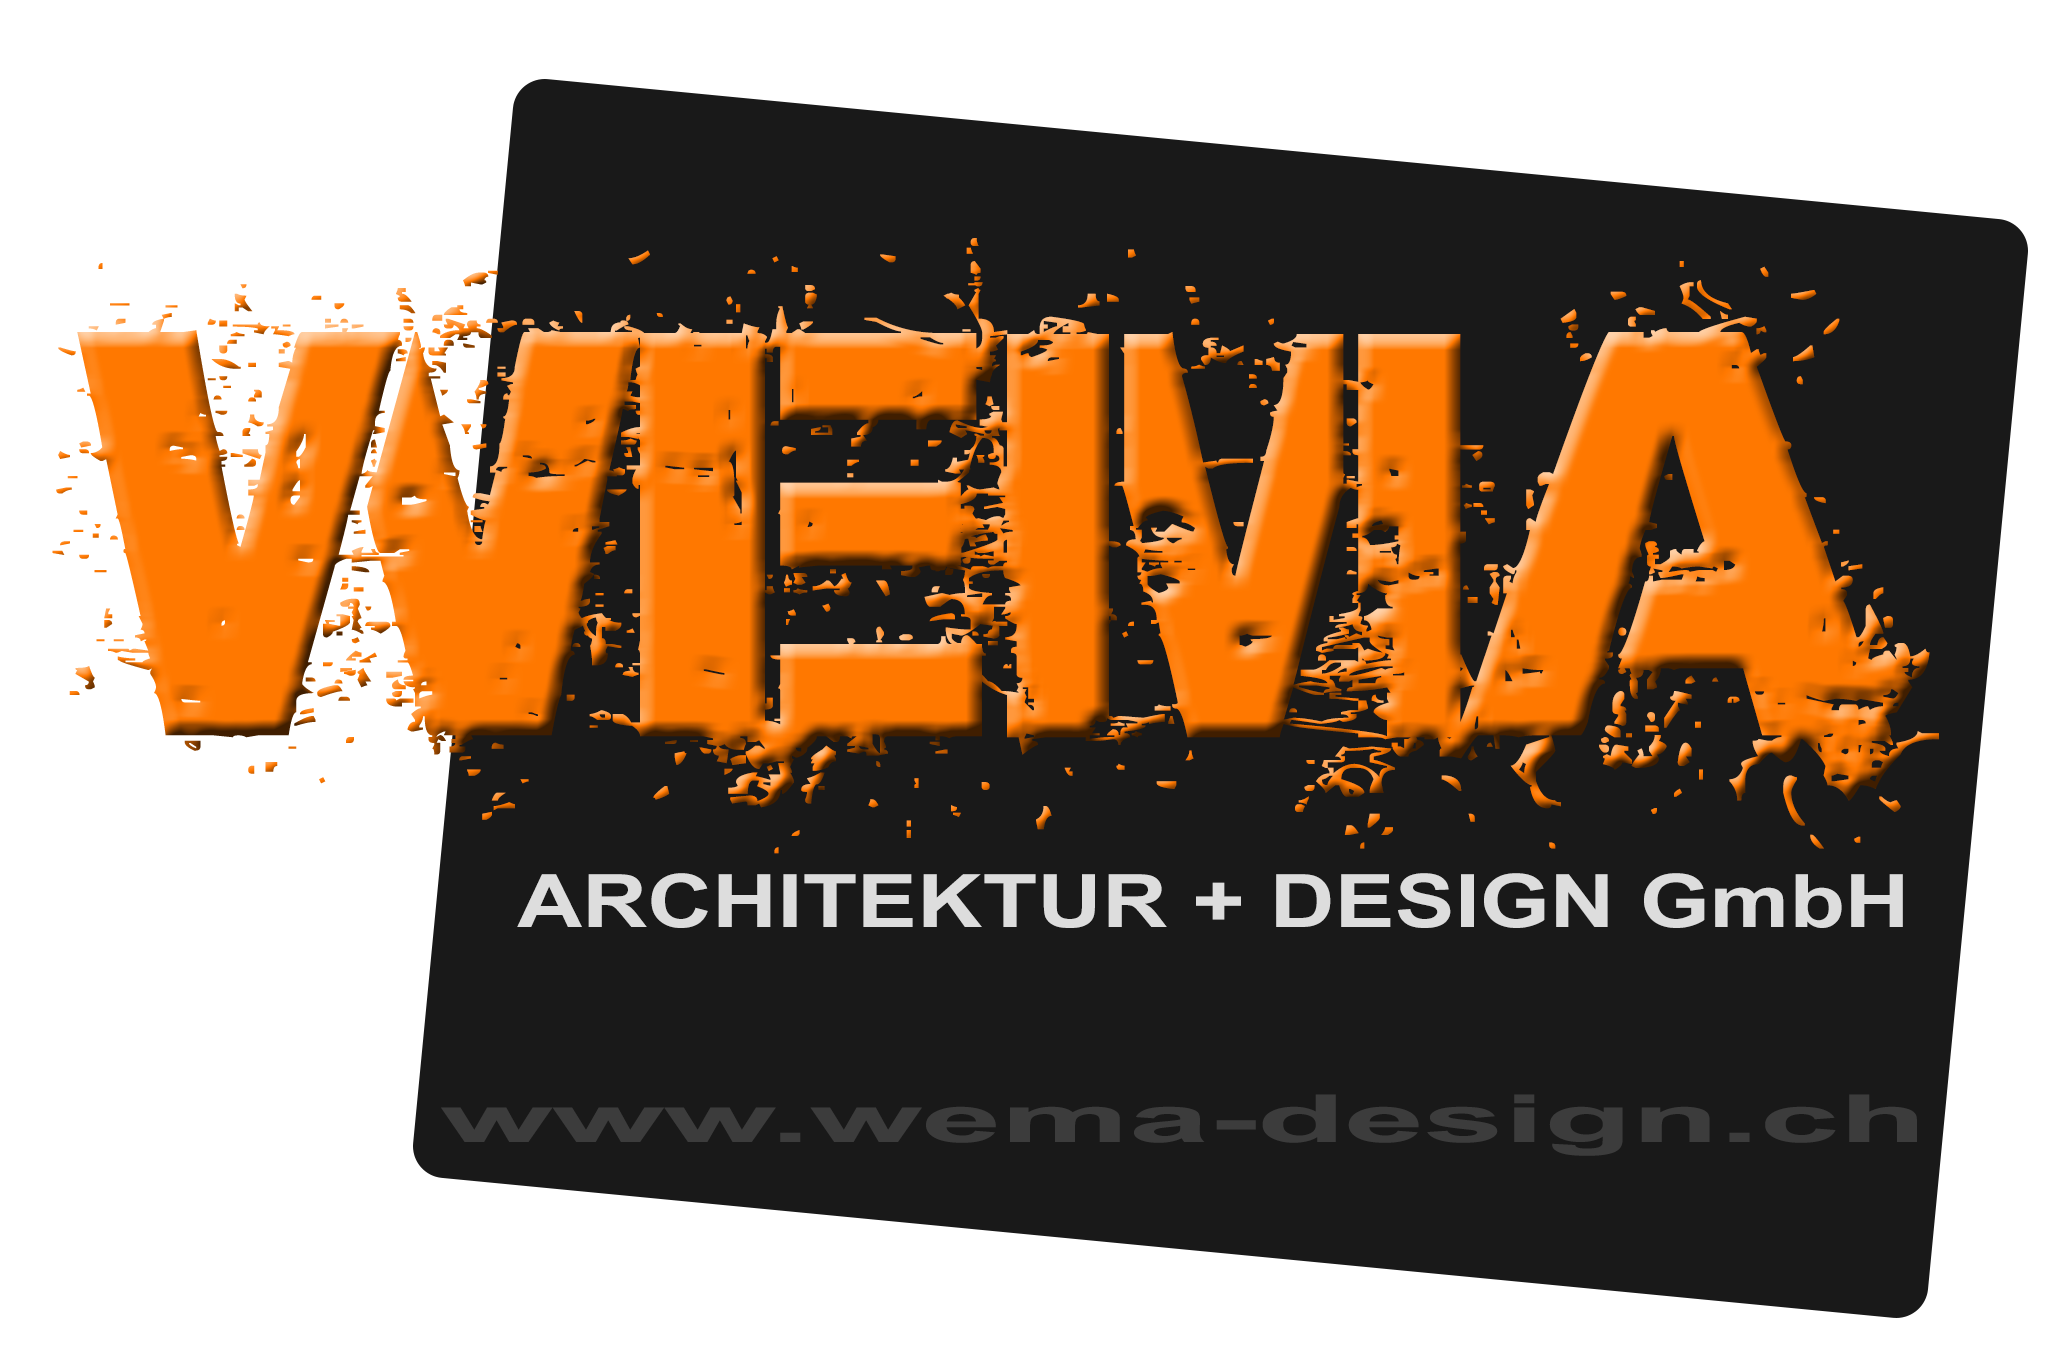 WEMA Architektur + Design GmbH